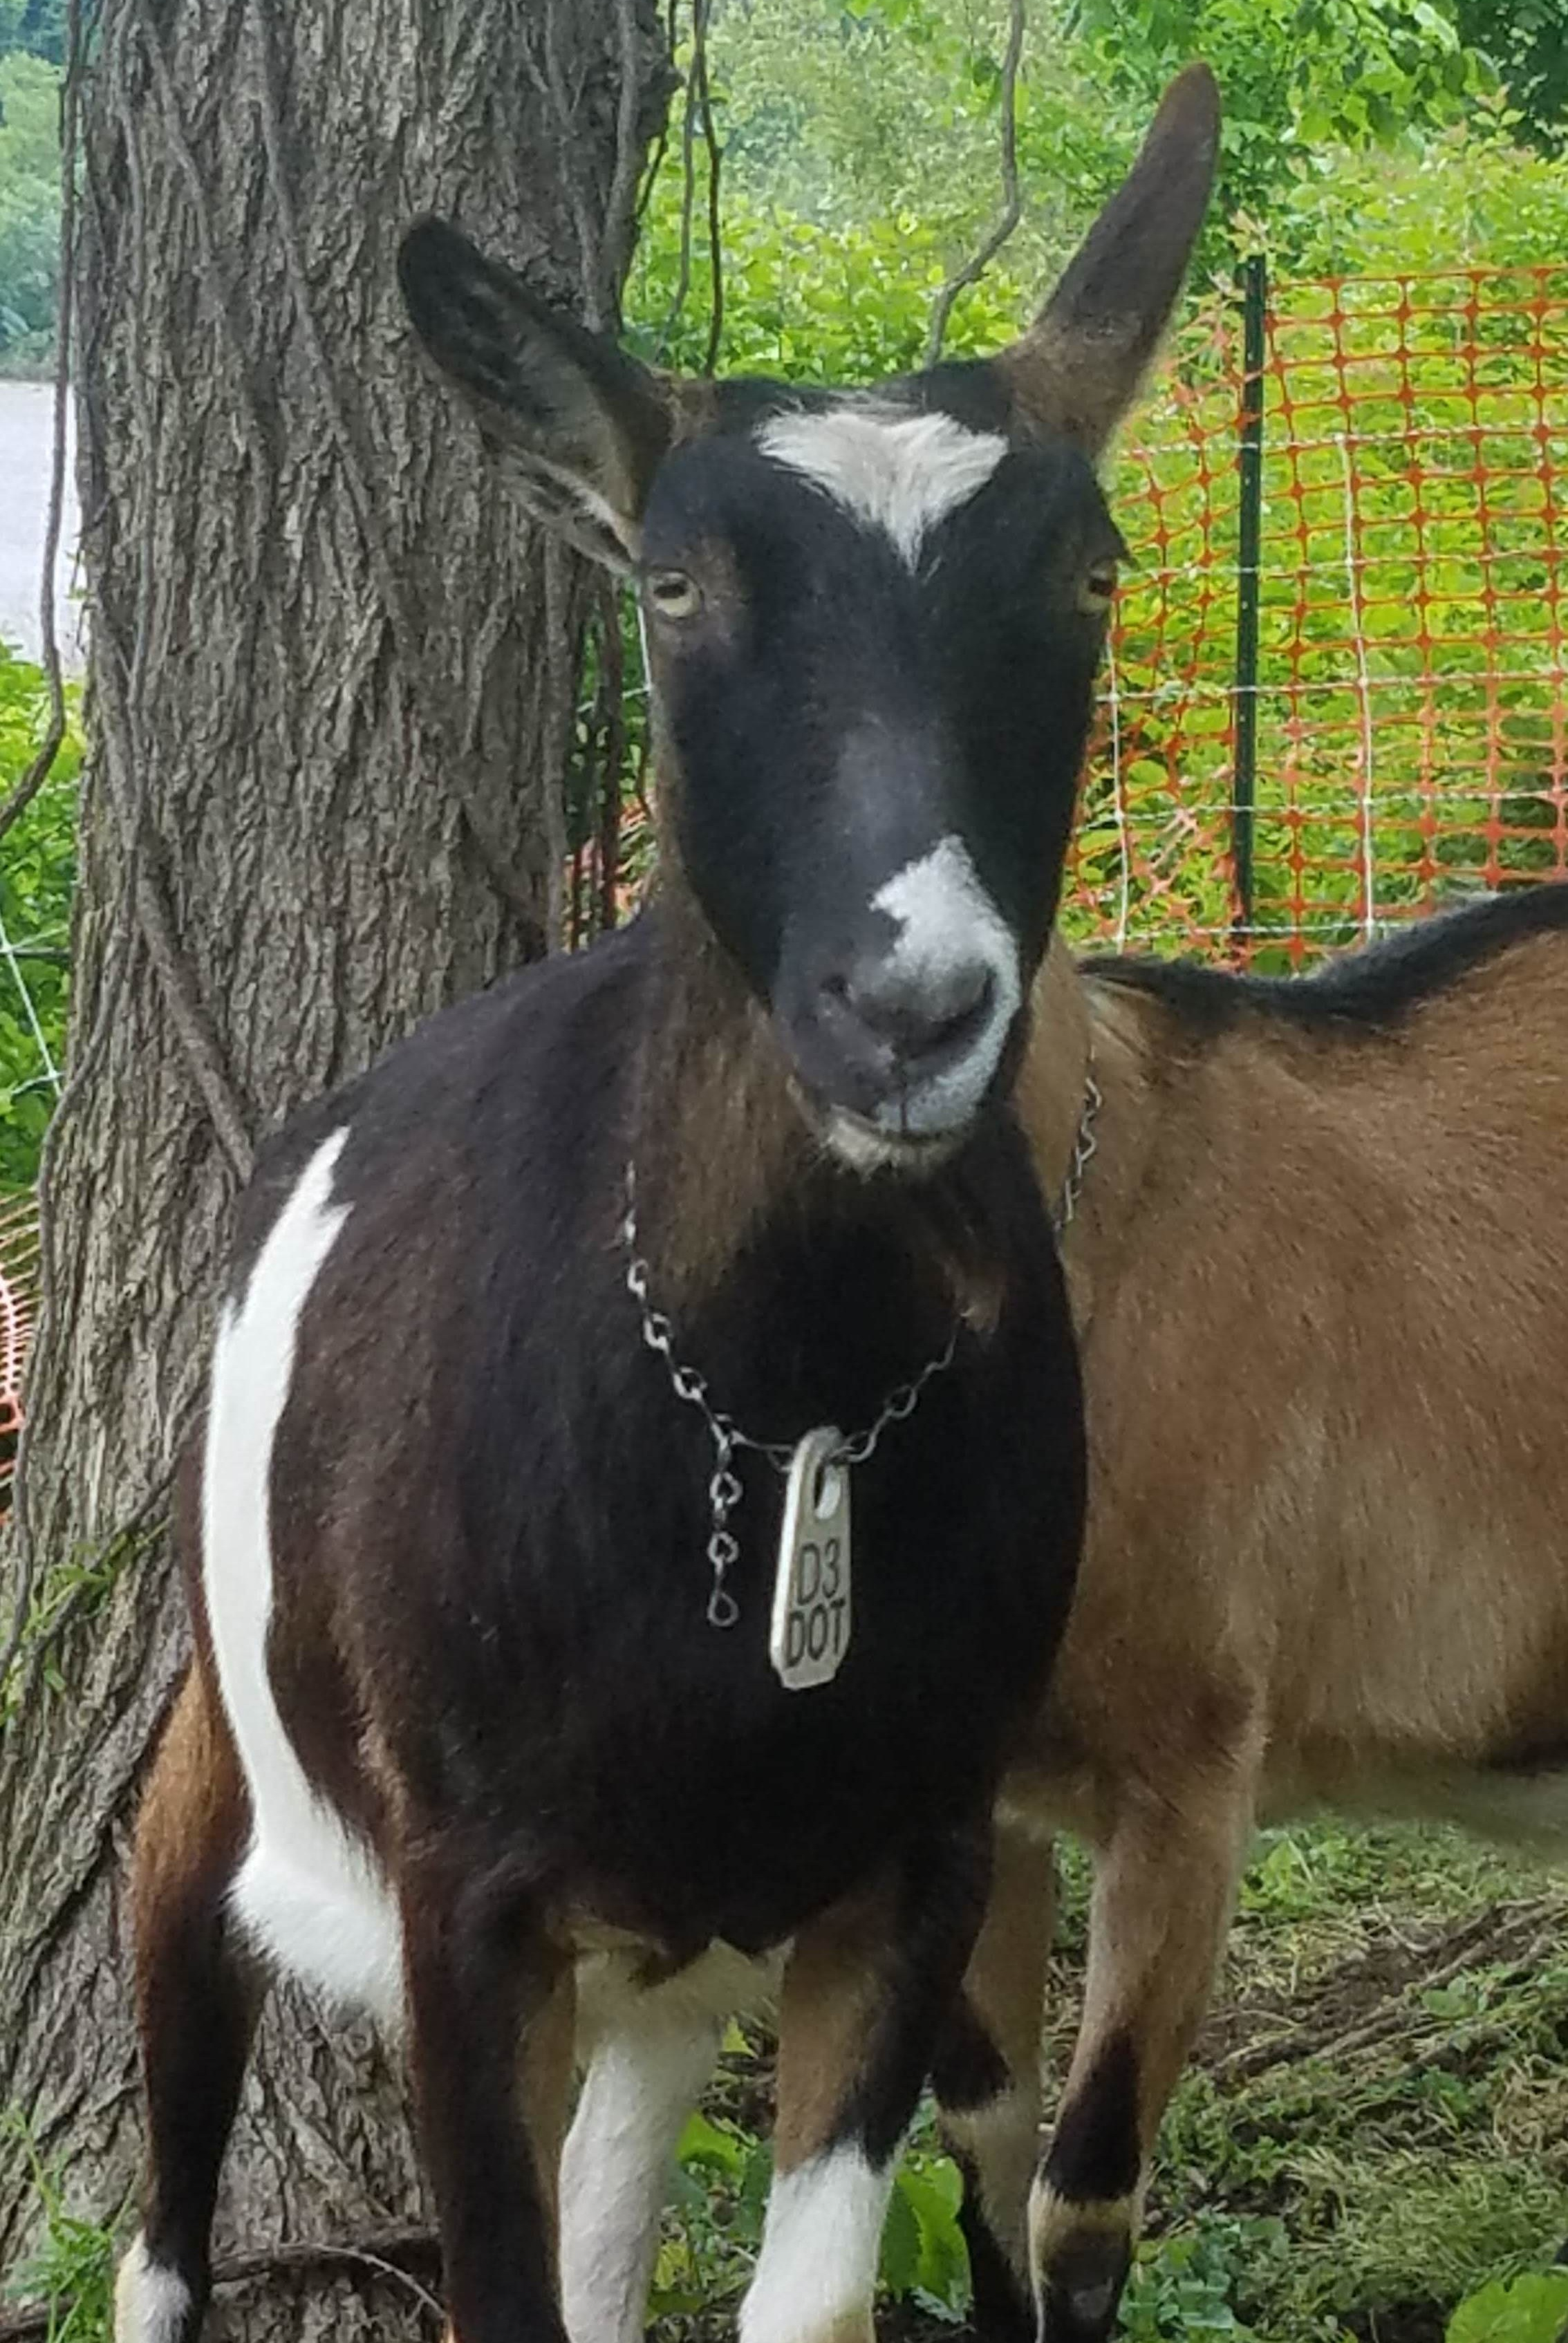 Dot  - Perhaps the most fiesty goat with Allegheny GoatScape, this Alpine is keen on stirring things up just before rest time. She is keen on working hard though, and eats with the best of them.